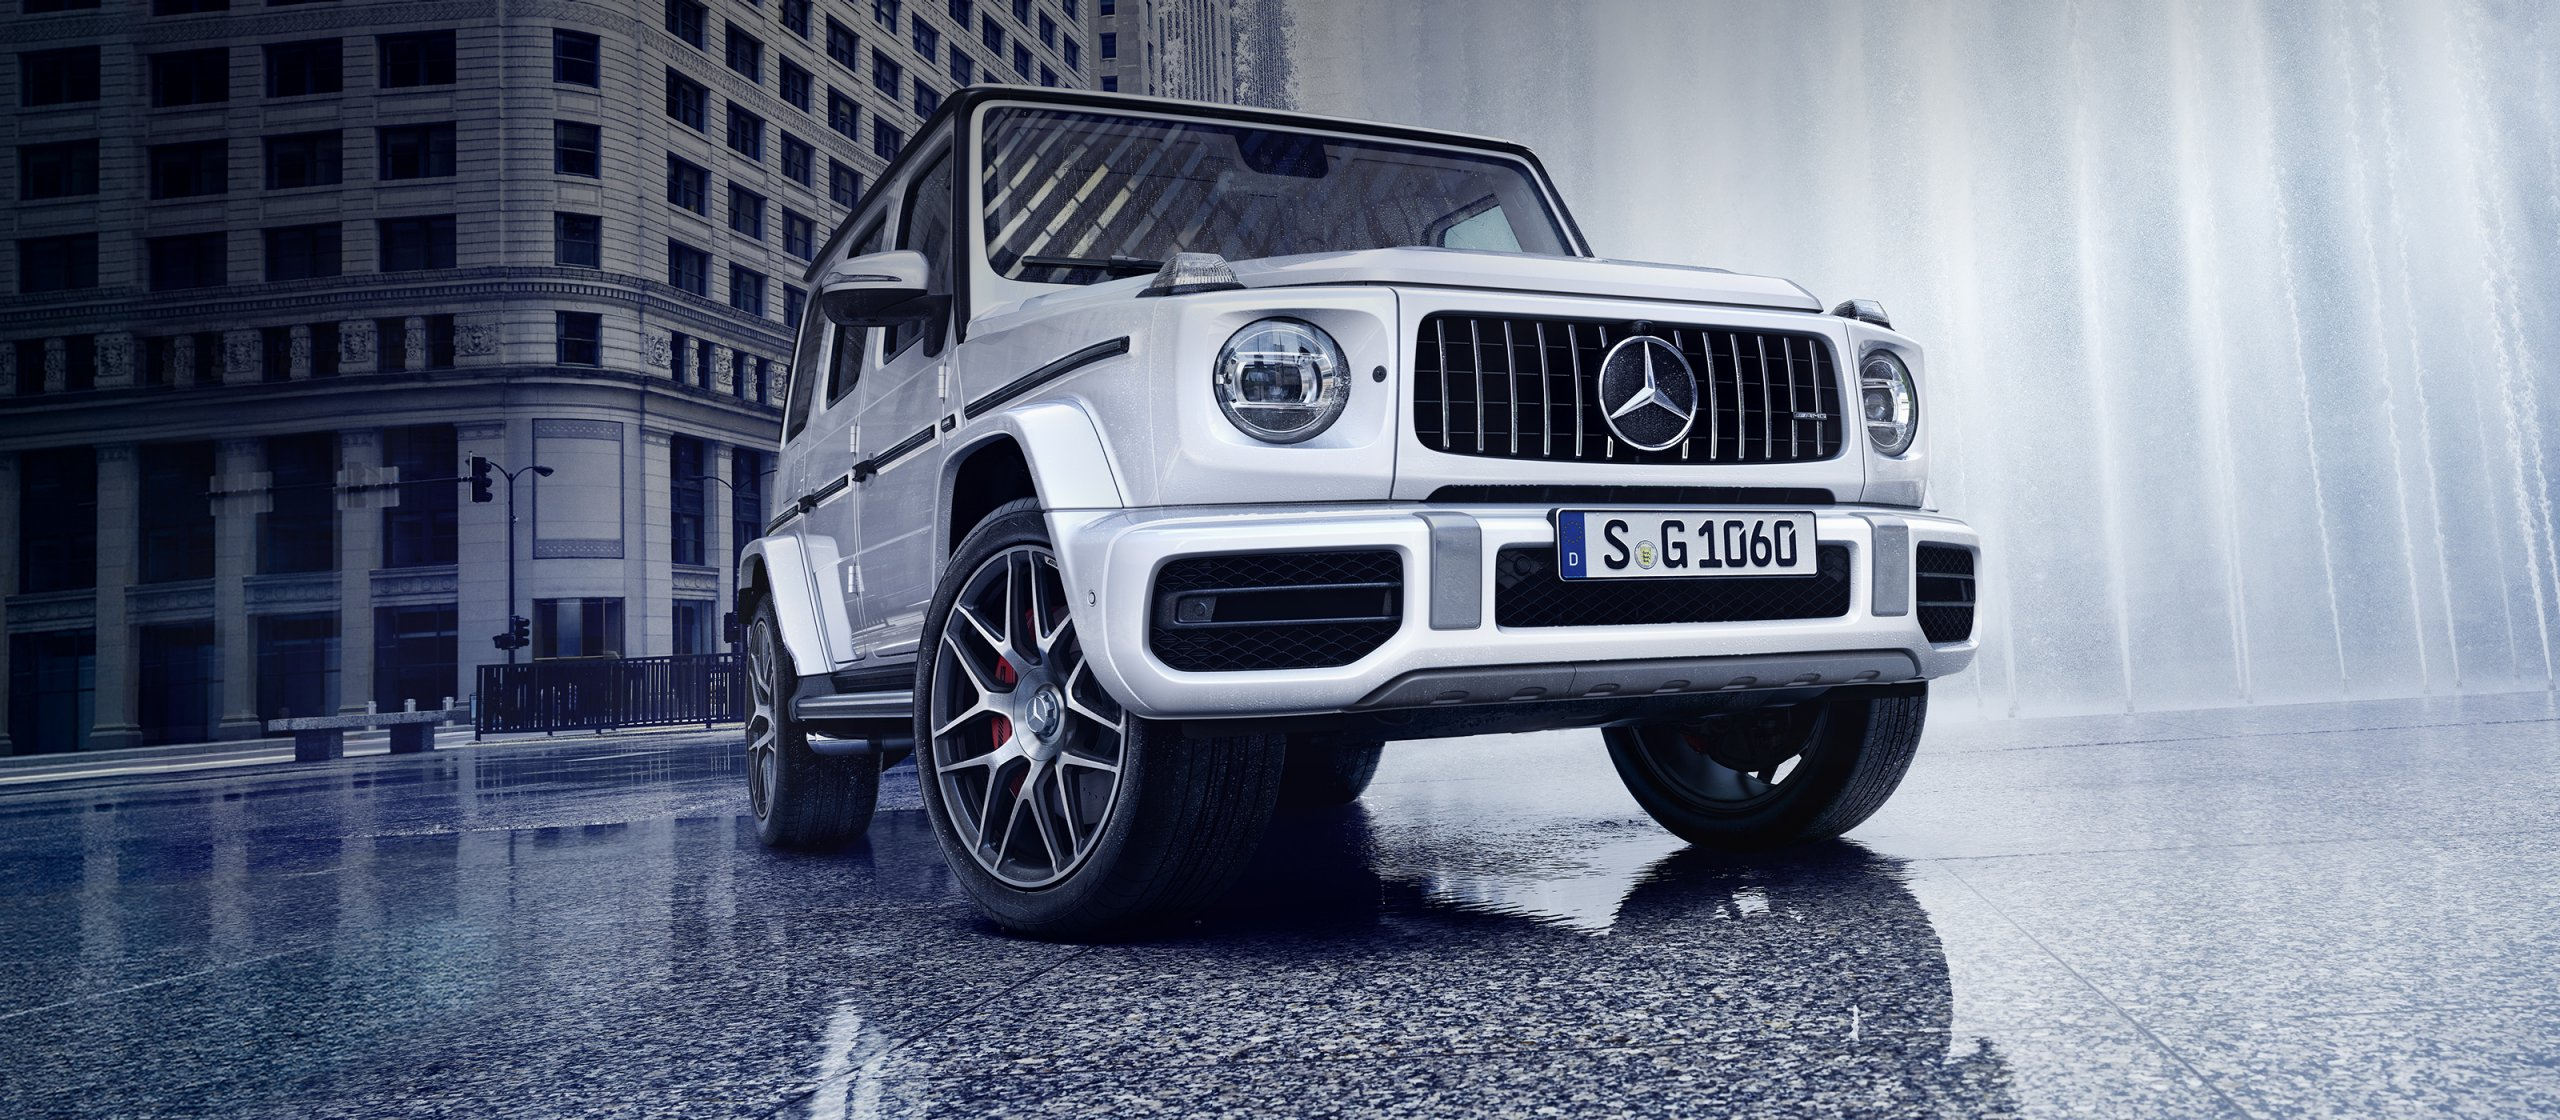 mercedes-benz-g-class-w463-amg-brandhub-full-screen-stage-3200x1400-11-2019